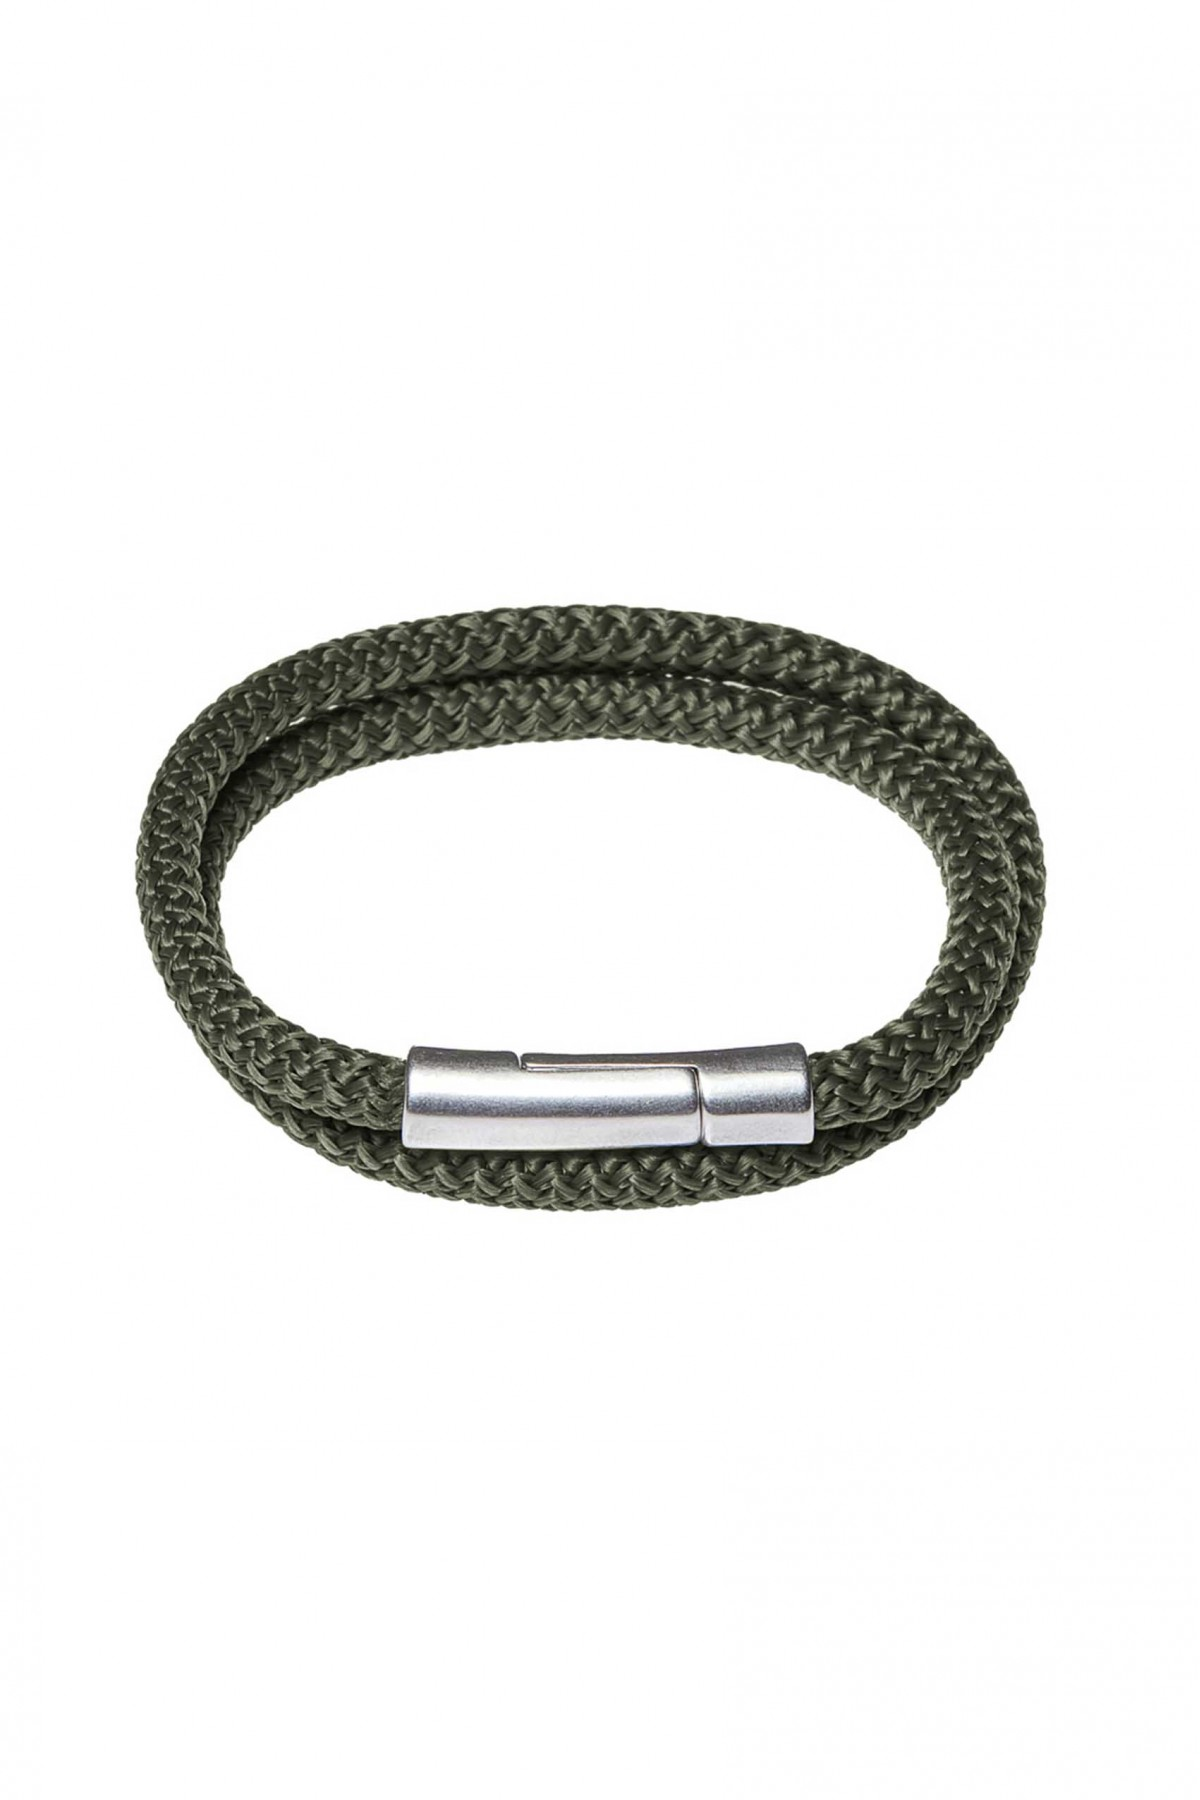 Pulsera Hombre Forrest Green Double